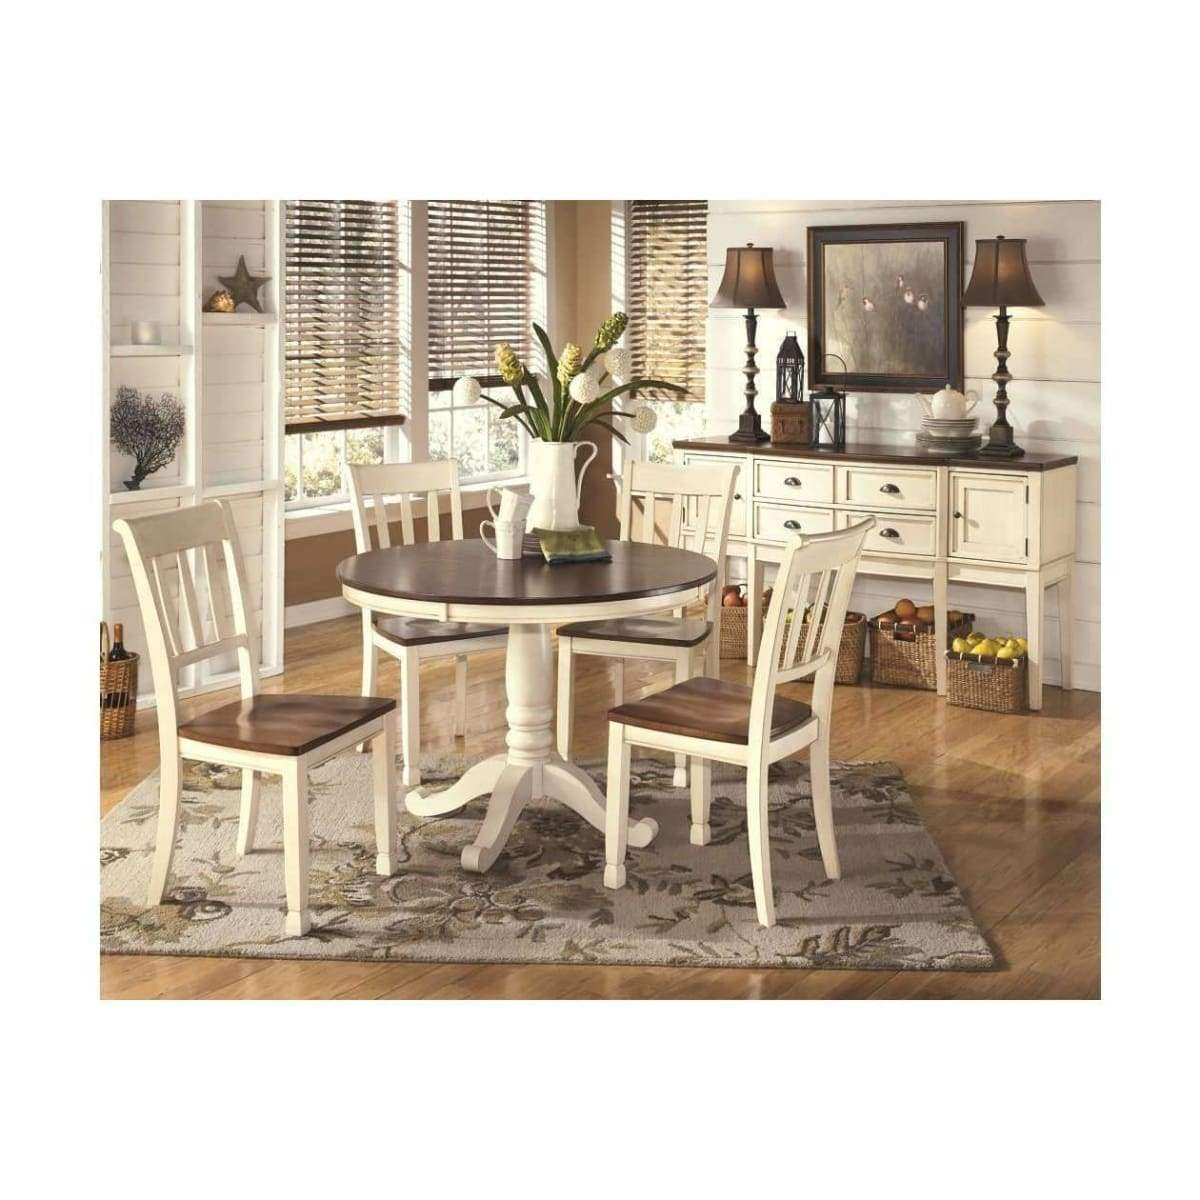 Whitesburg Round Dining Table With 4 Chairs - DININGCOUNTERHEIGHT